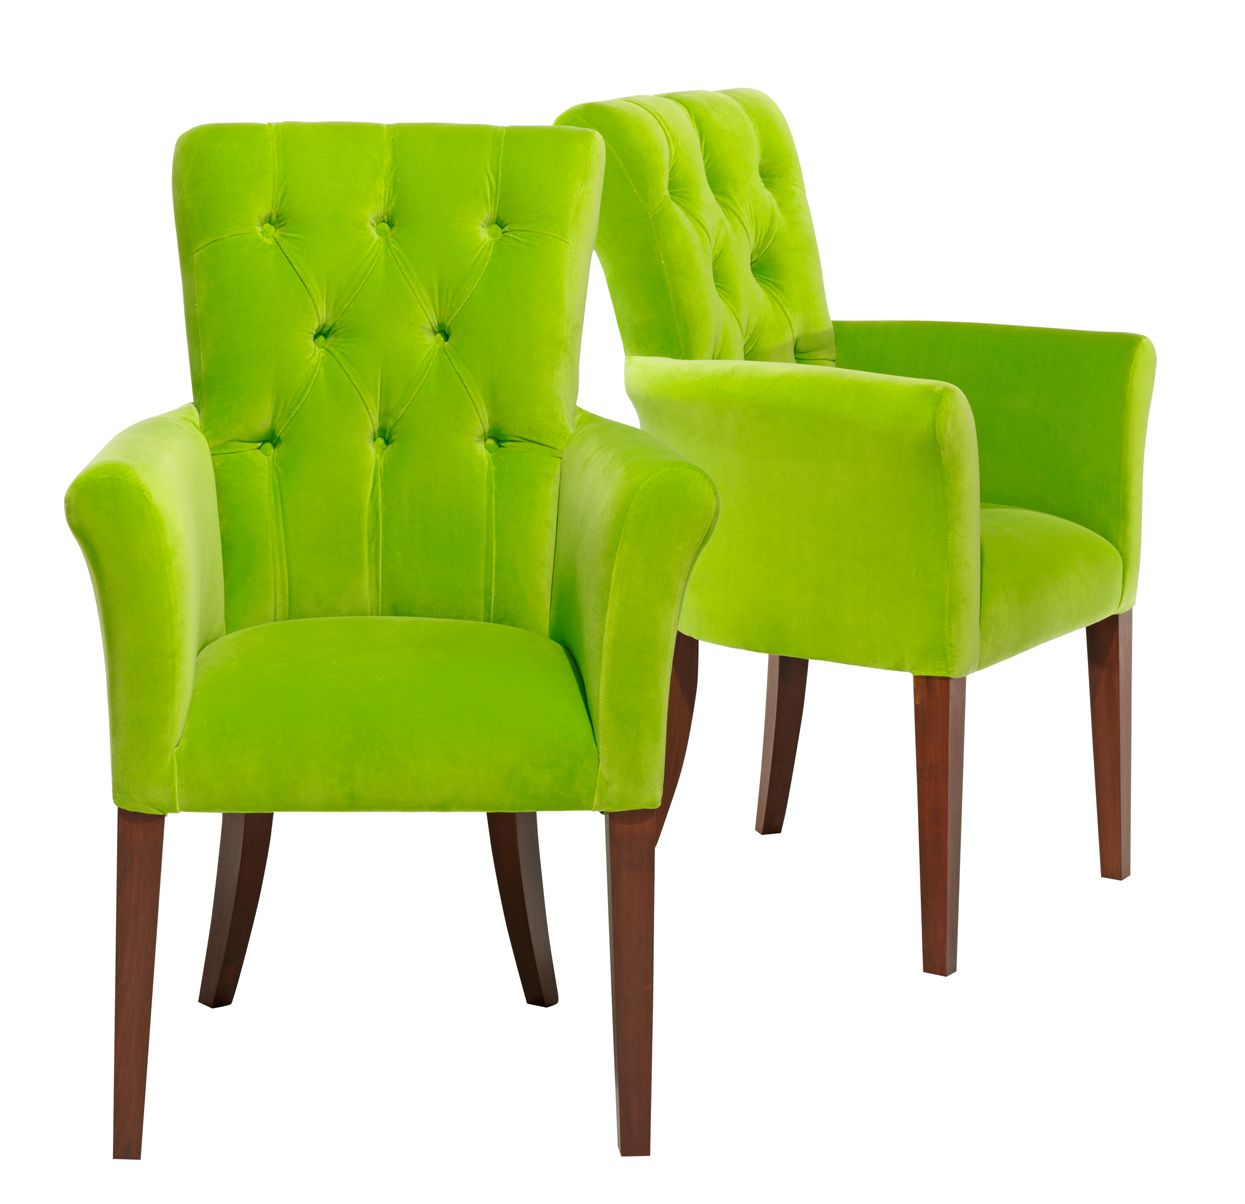 Lime Green Chairs These Bright Lime Green Chairs From Sofa Design Add Some Colour To